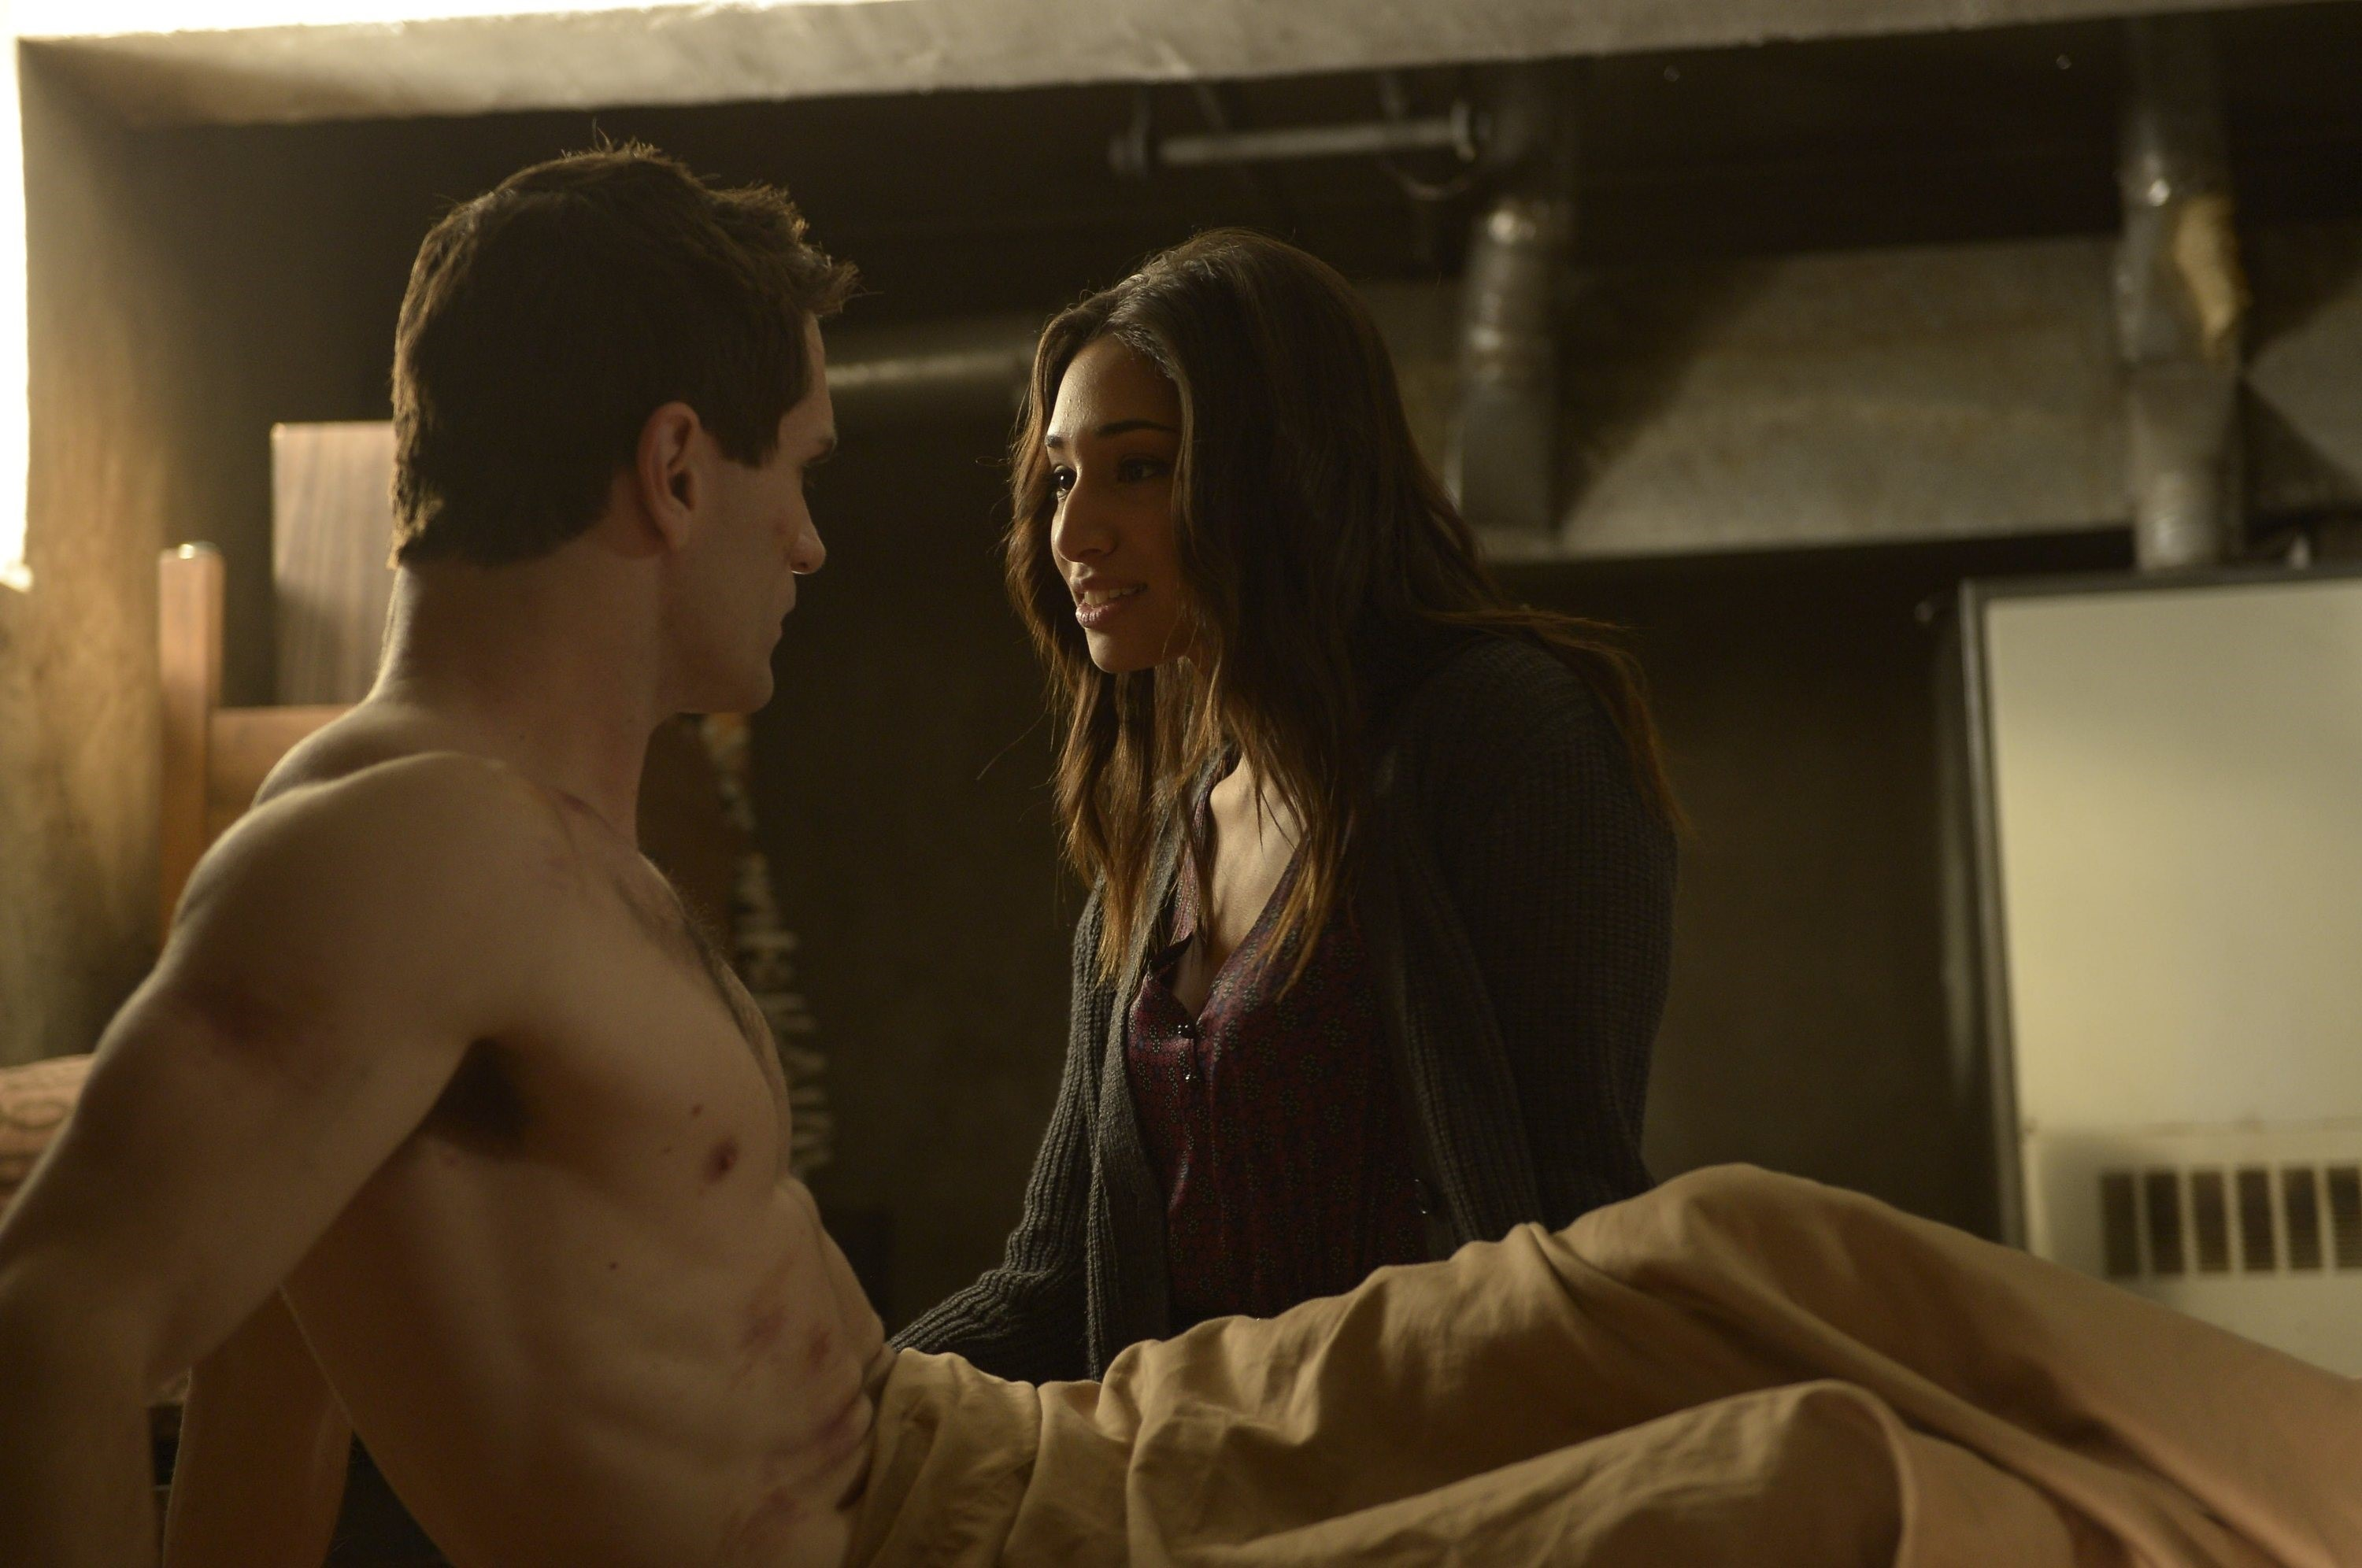 Meaghan rath nude fakes